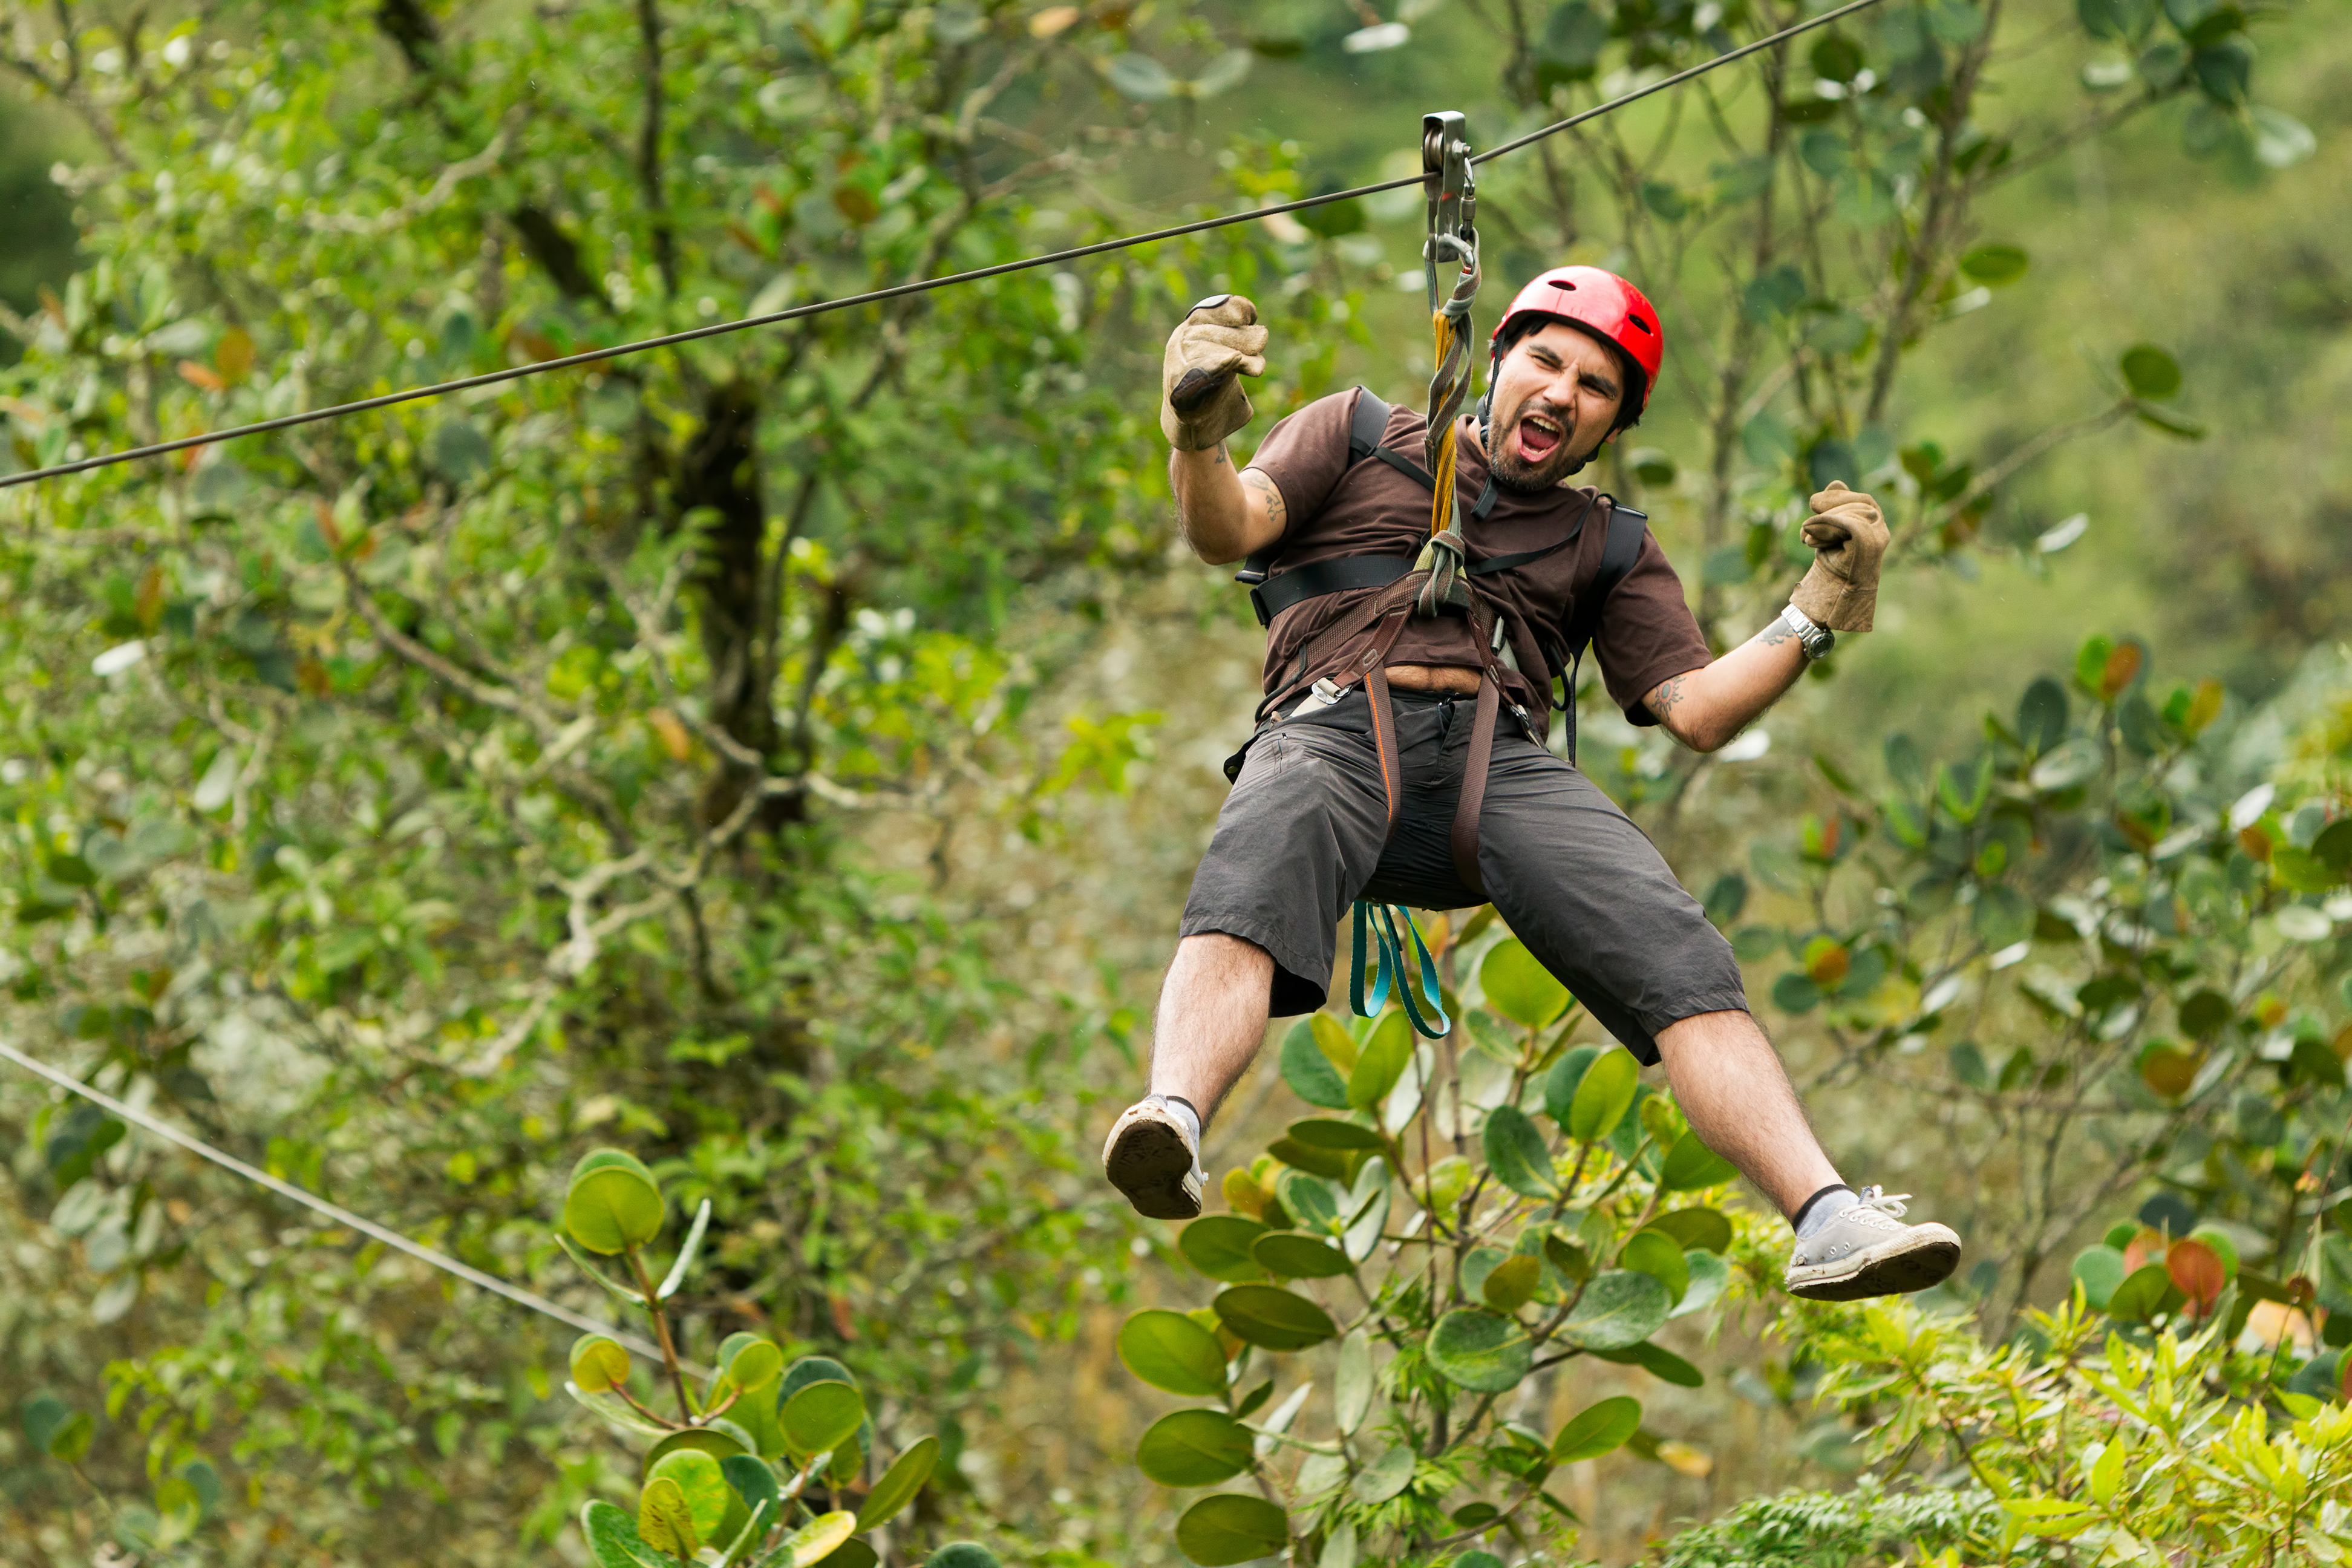 Excited man zip lining